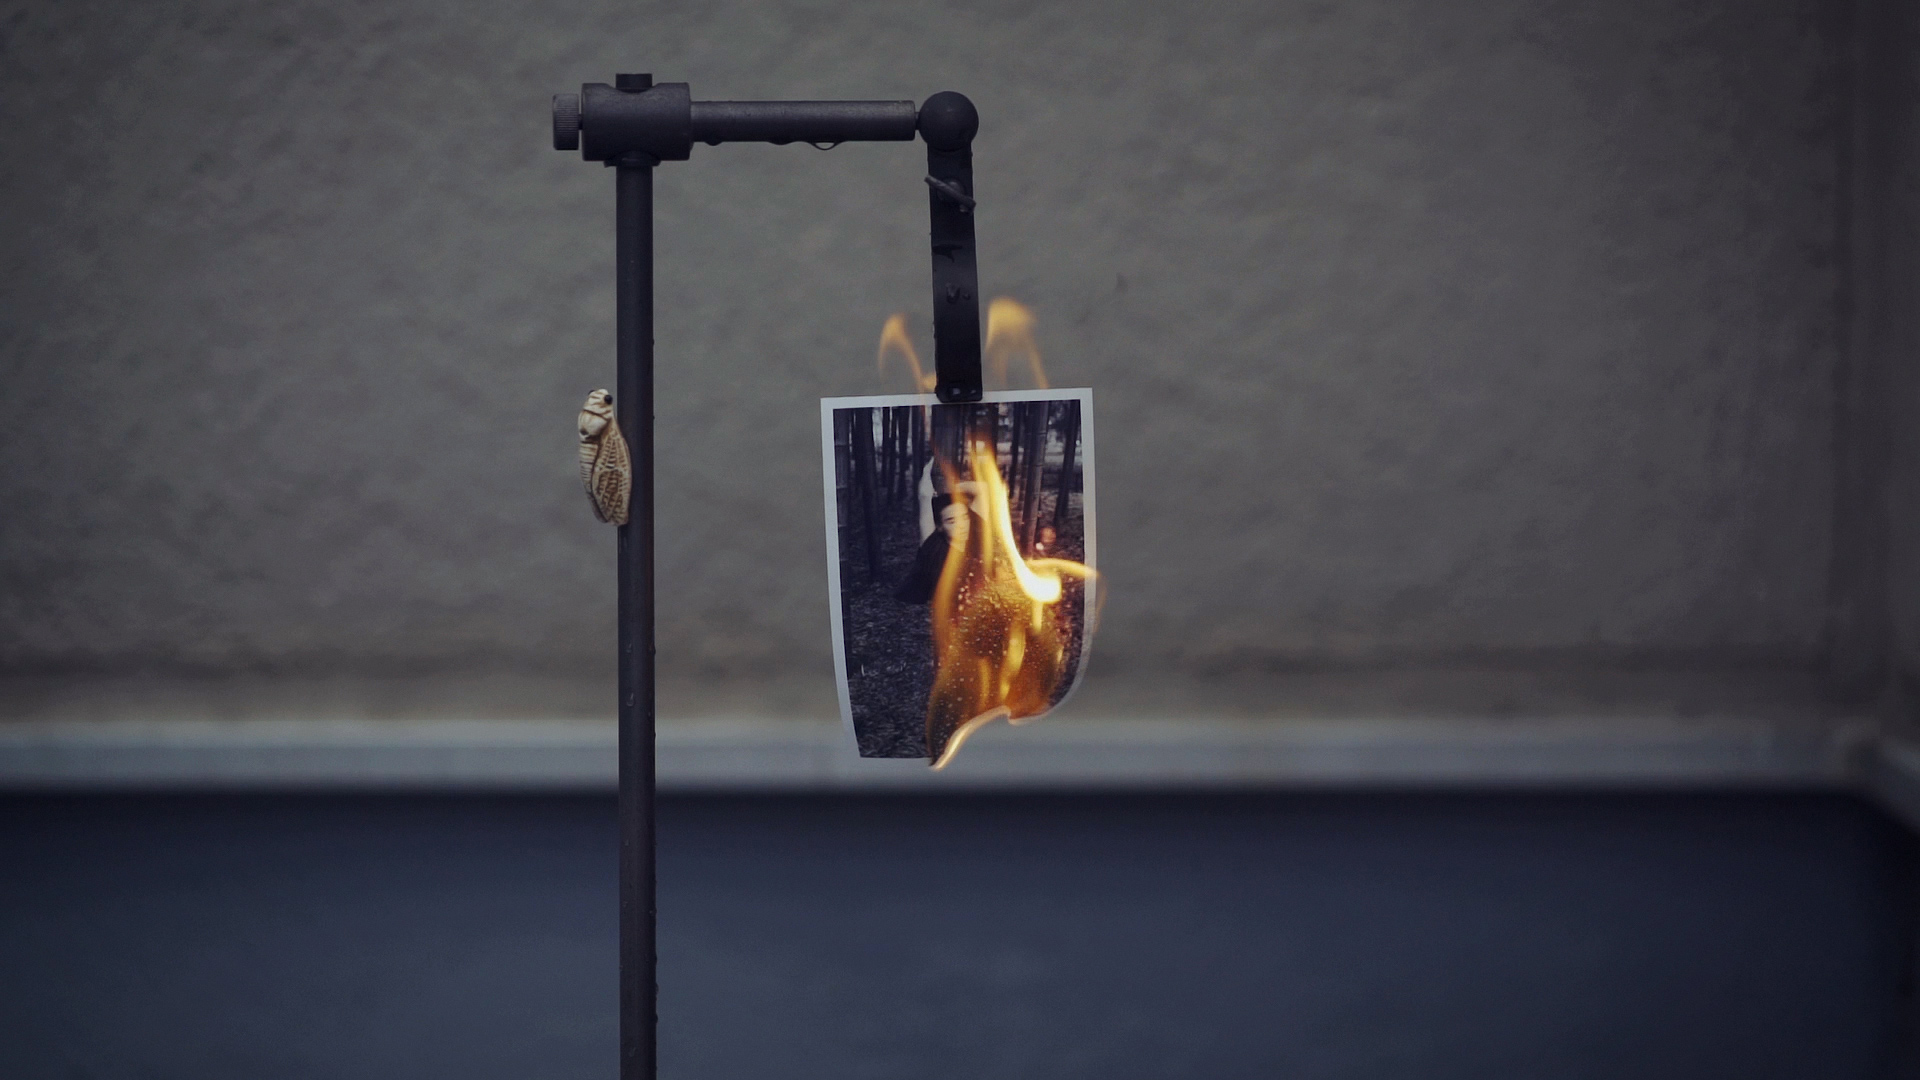 It's A Video Of Burning Prints That Took Some Courage To Do | Tim Gallo